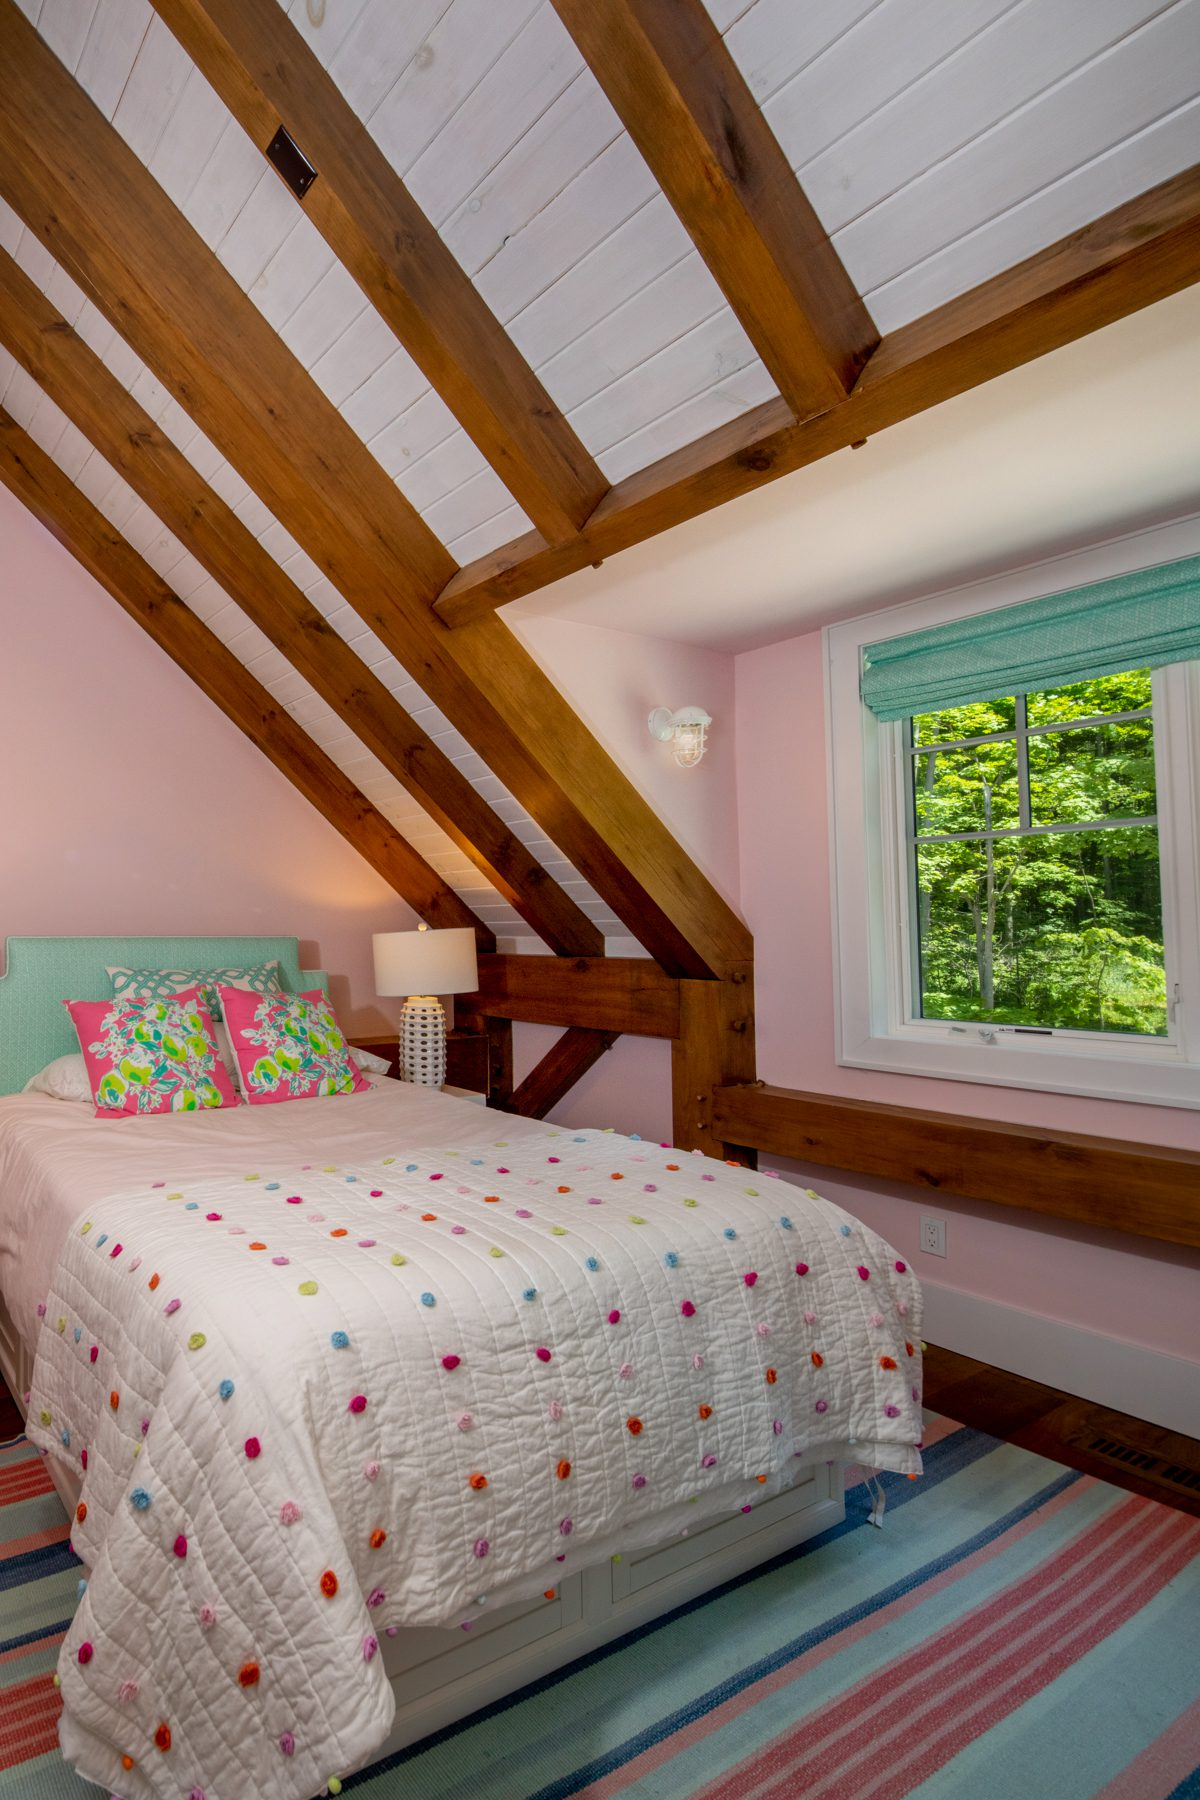 Normerica-Timber-Homes-Timber-Frame-Portfolio-Beachside-Bliss-Interior-Girl-Bedroom-Forest-View